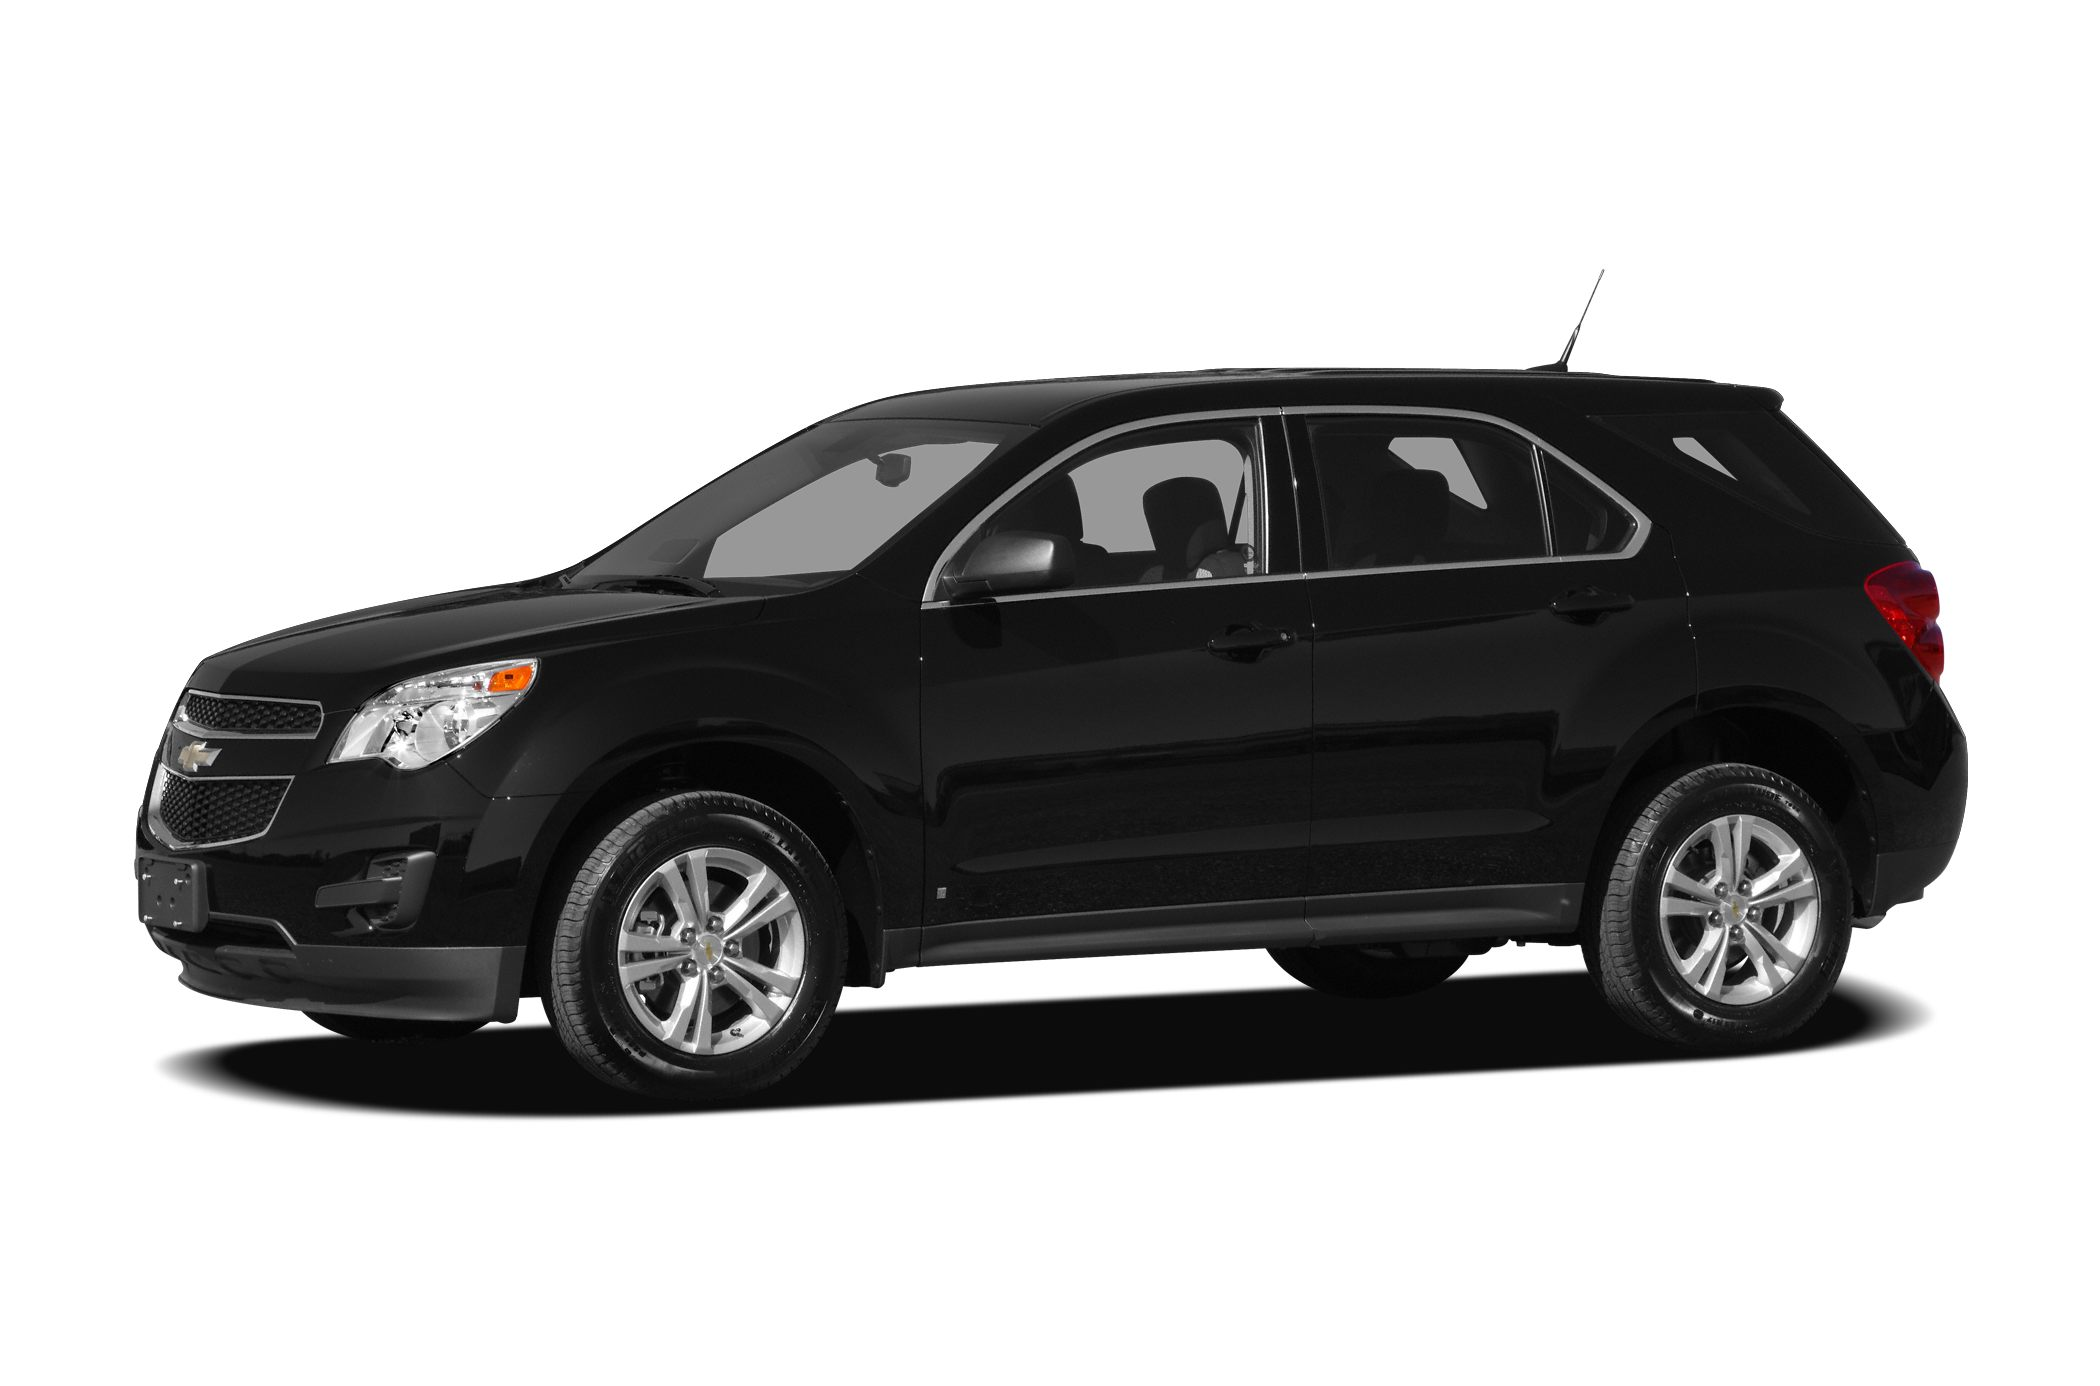 2010 Chevrolet Equinox LT SUV for sale in Circleville for $0 with 140,289 miles